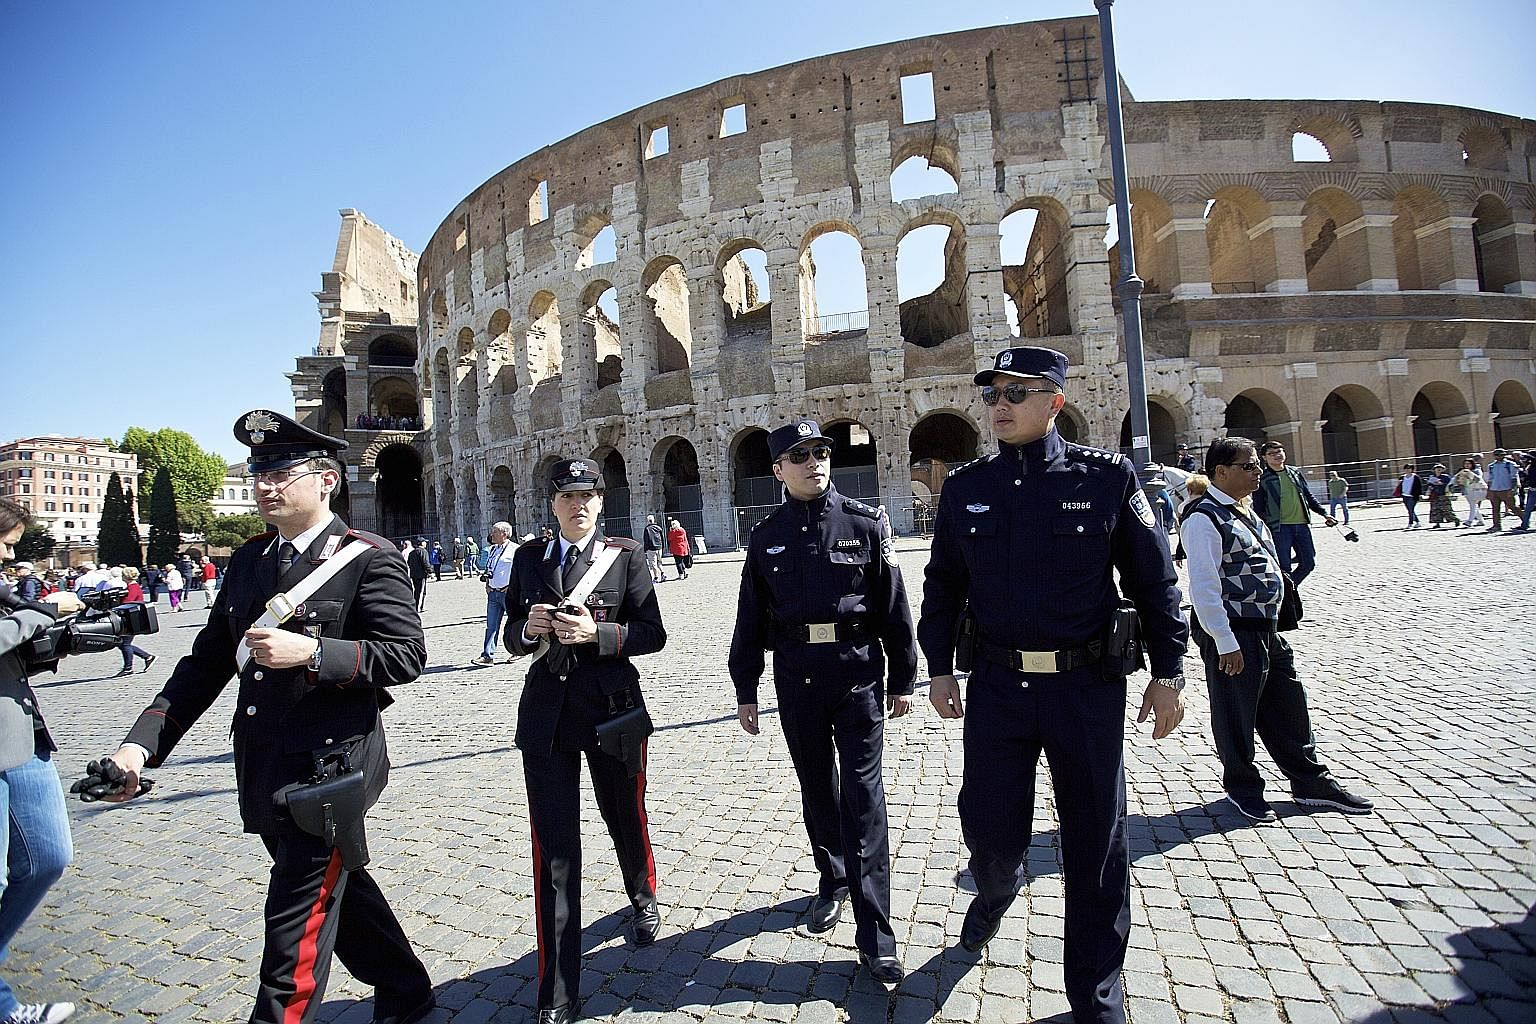 Chinese police officers go on patrol in Italy, Europe News & Top